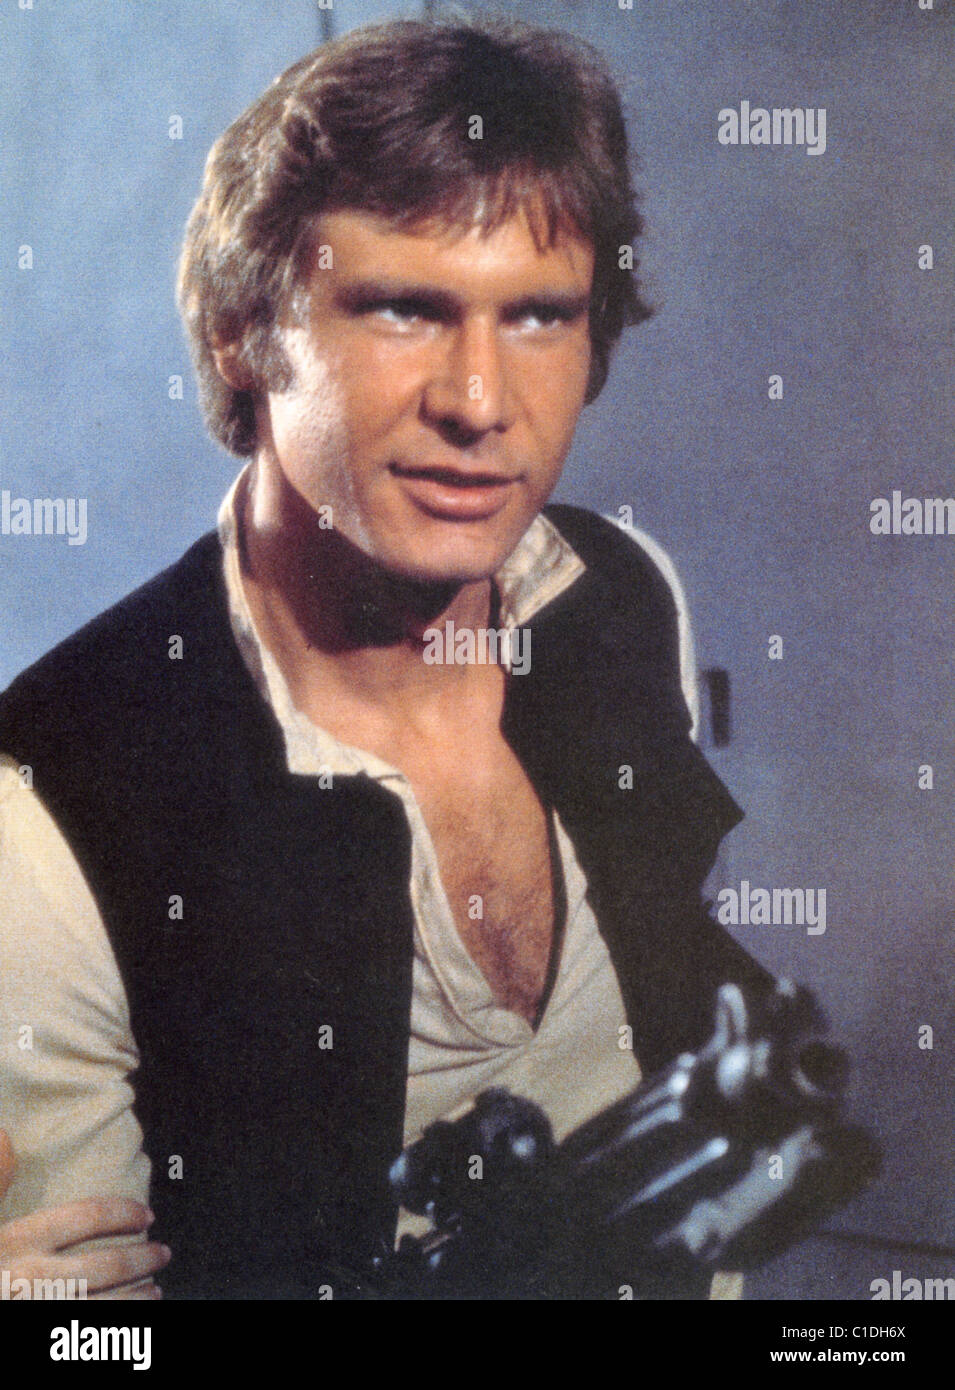 STAR WARS EPISODE IV - A NEW HOPE 1977 Lucasfilm/Paramount film with Harrison Ford as Luke Skywalker - Stock Image